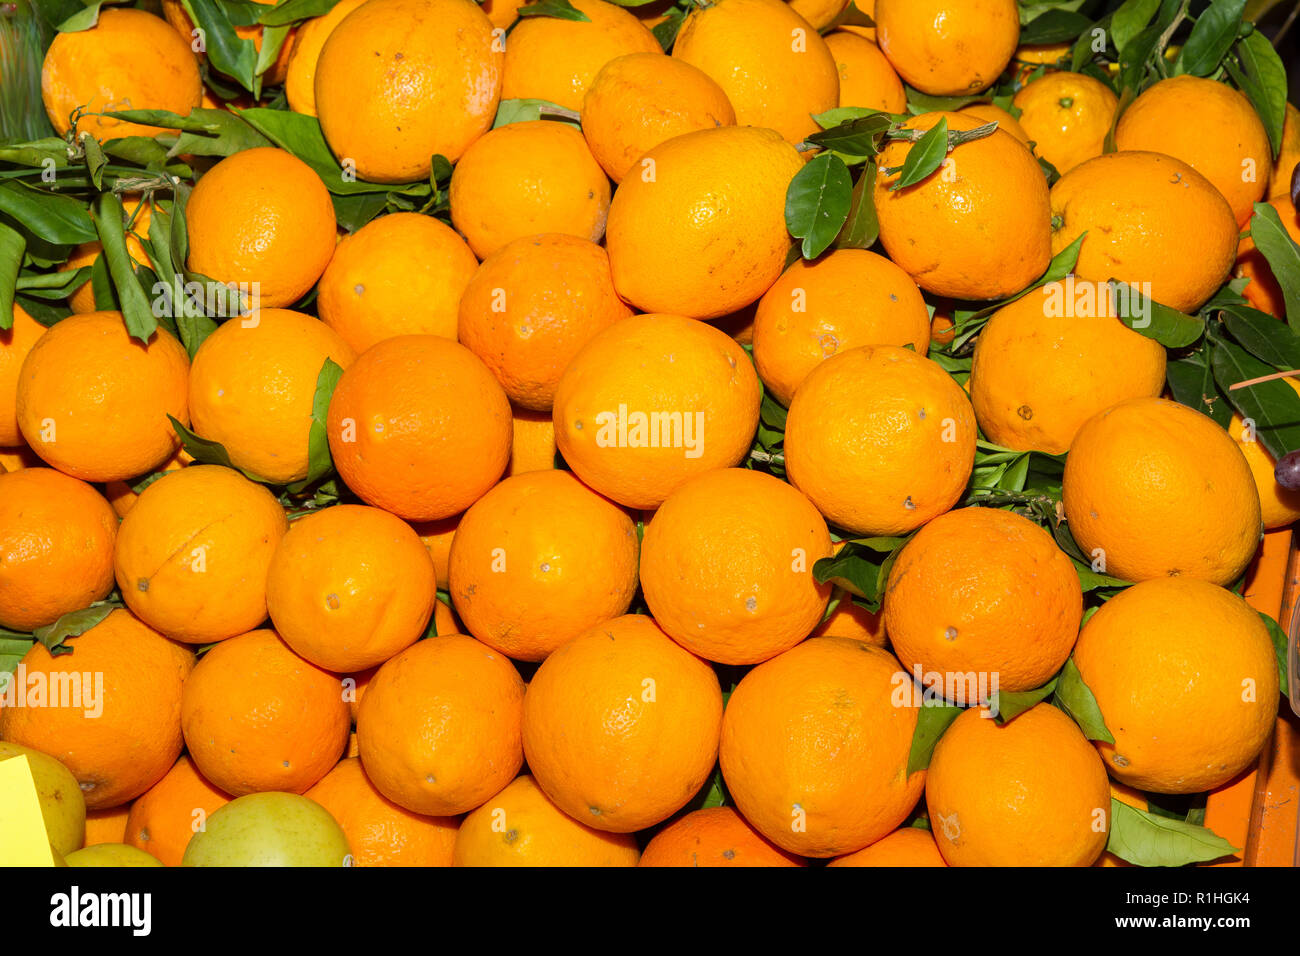 Basketful with fresh harvest of oranges on in a fruit market. Nutrition and Health care concept. - Stock Image